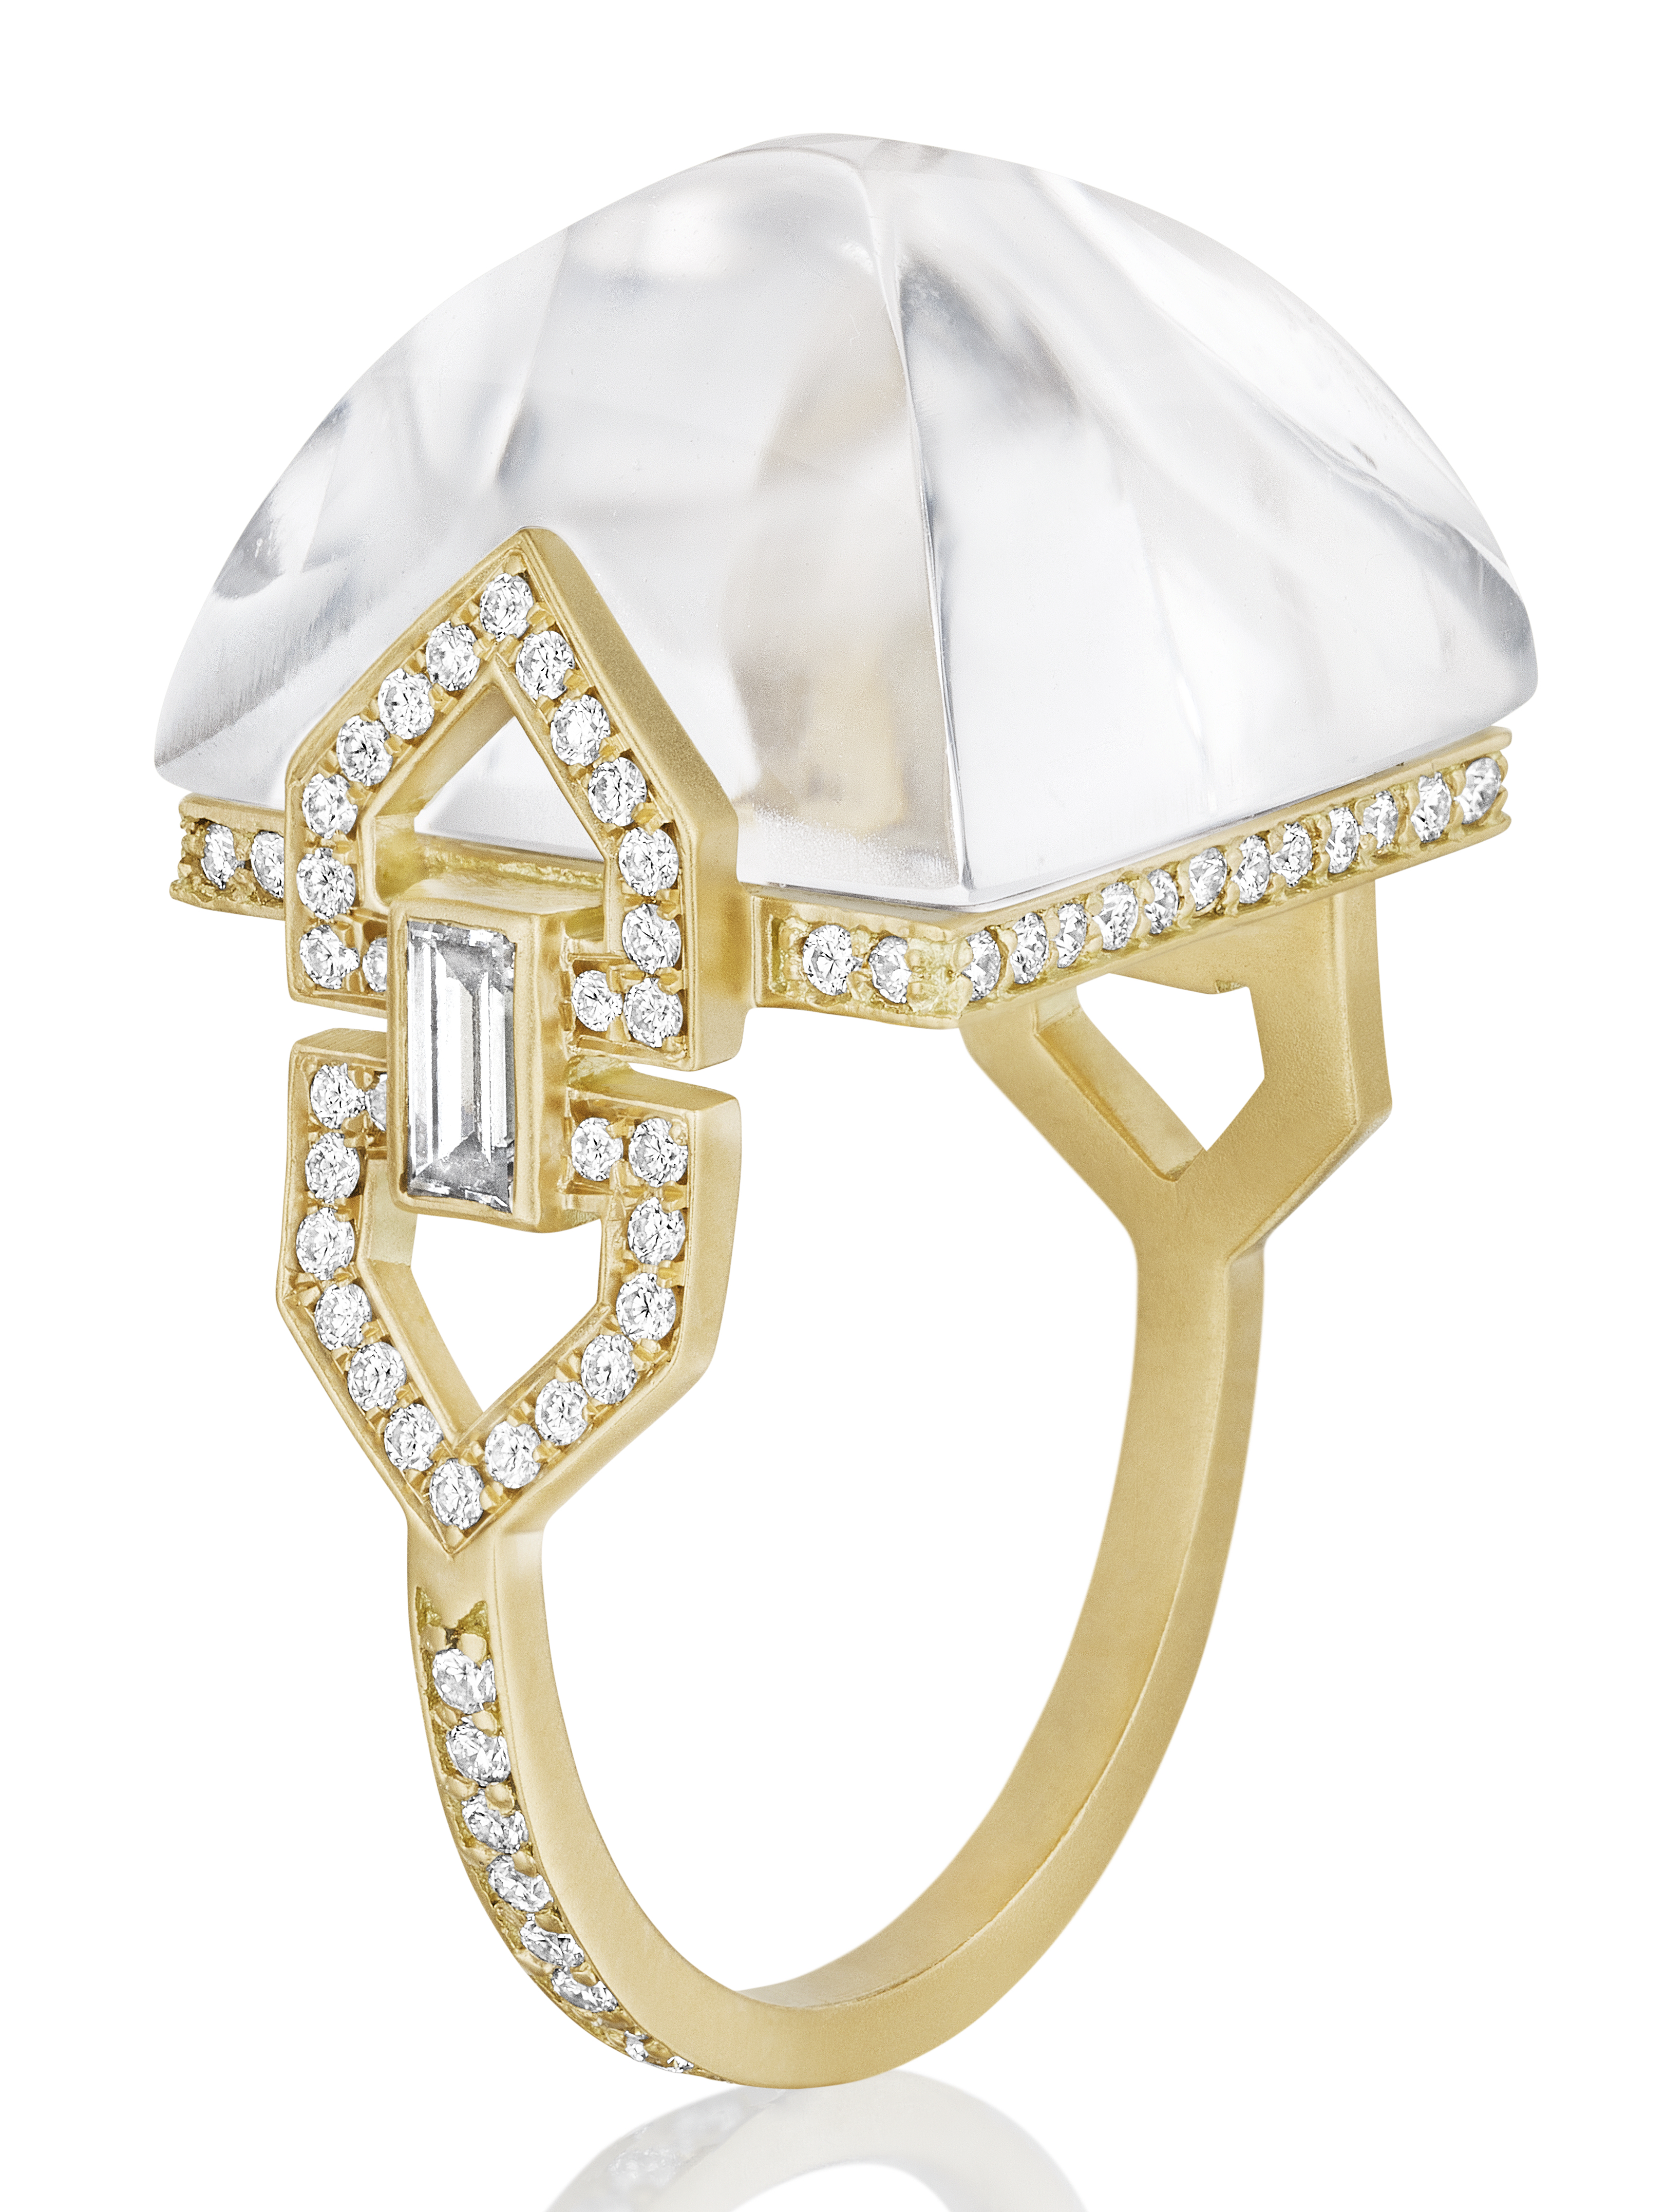 Doryn Wallach sugar loaf rock crystal ring | JCK On Your Market